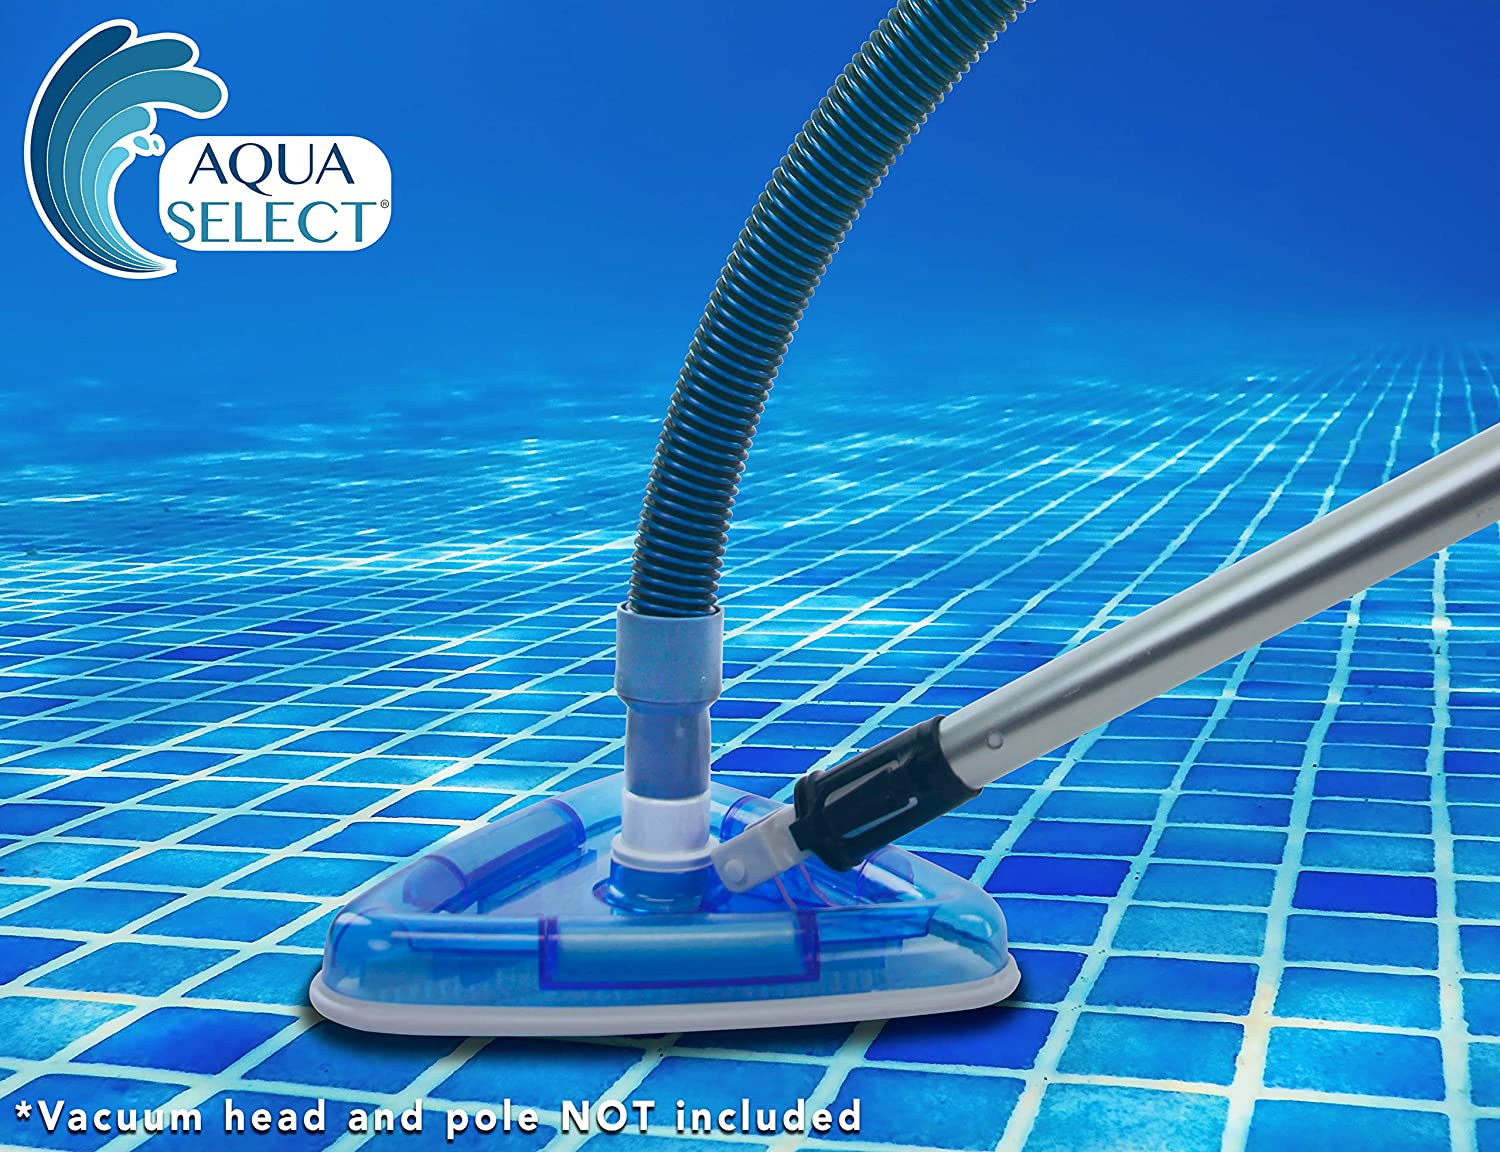 Aqua Select Premium Kink-Free Swimming Pool Vacuum Hoses with 1.25-Inch Swivel Cuff Perfect for Above Ground and Inground Pools 21-Feet Length